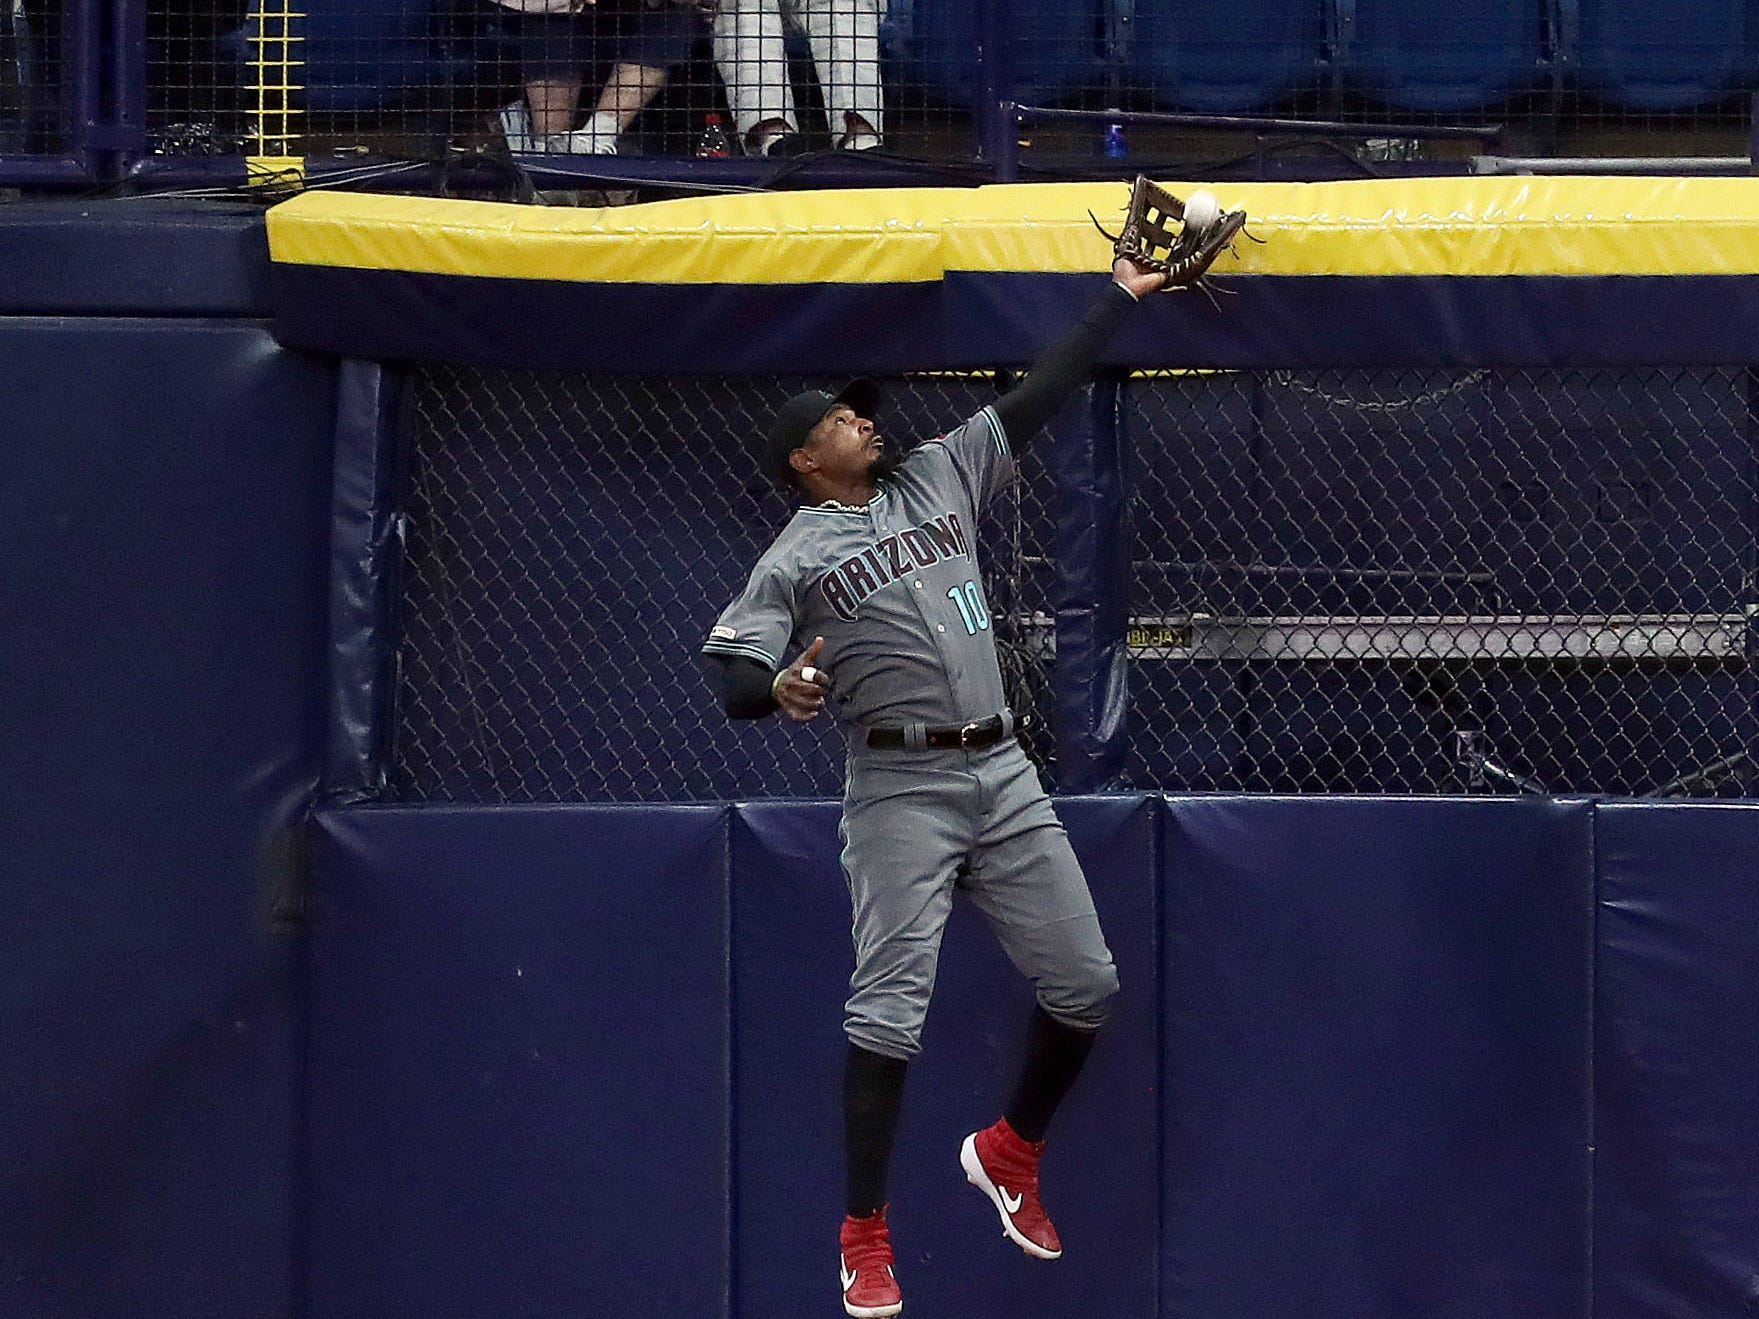 May 7, 2019; St. Petersburg, FL, USA; Arizona Diamondbacks right fielder Adam Jones (10) catches a fly ball during the second inning against the Tampa Bay Rays at Tropicana Field. Mandatory Credit: Kim Klement-USA TODAY Sports